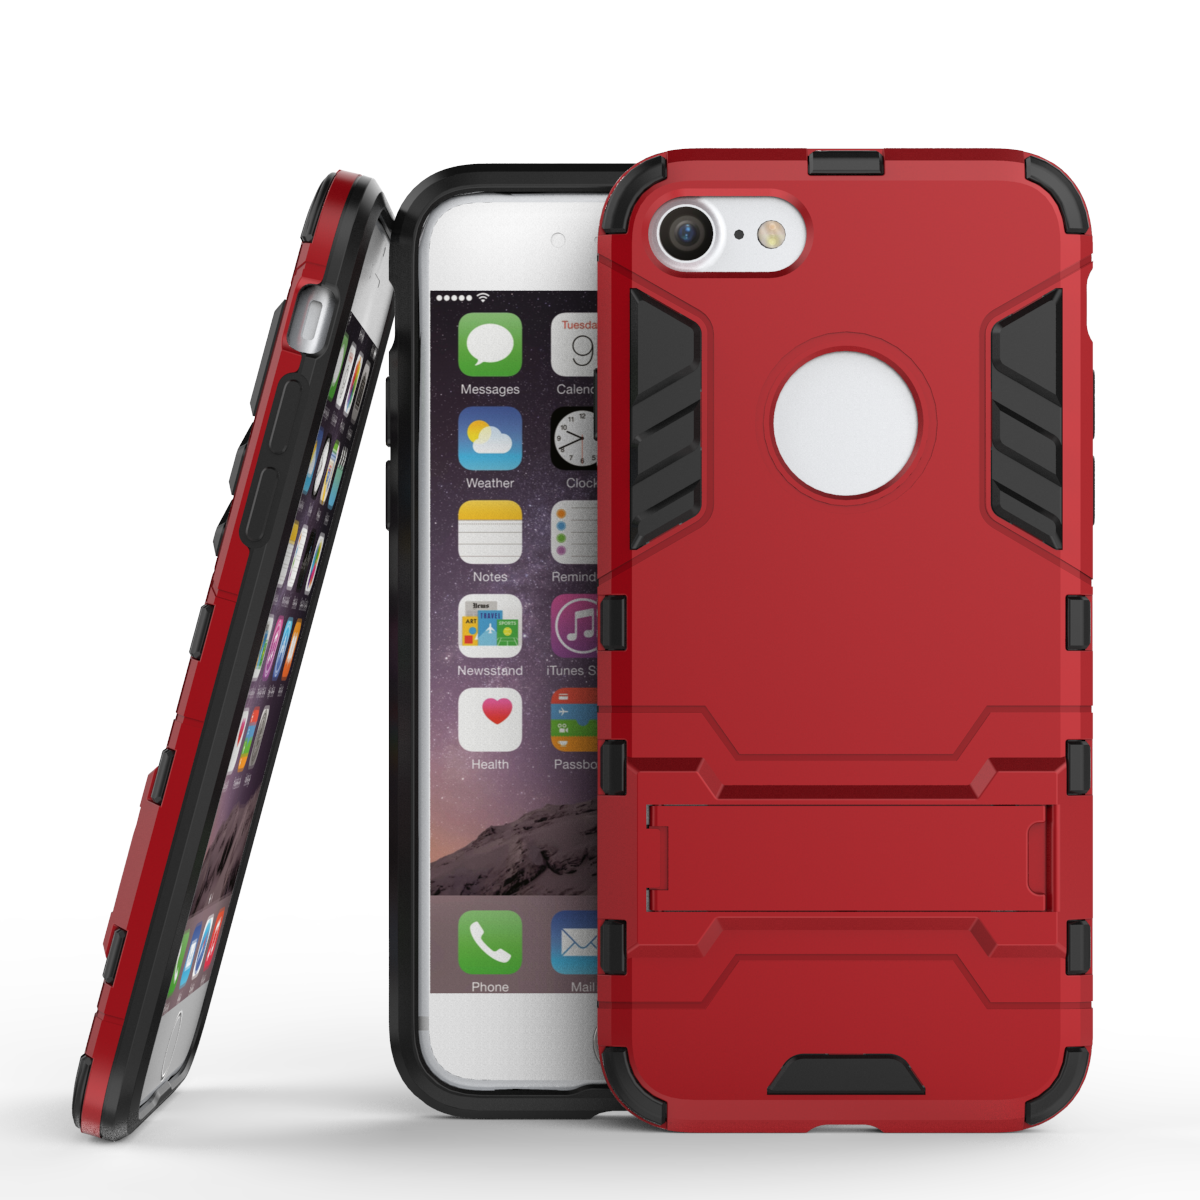 Slim armor shockproof kickstand protective case for iphone 7 4 7inch red p20160907134346821